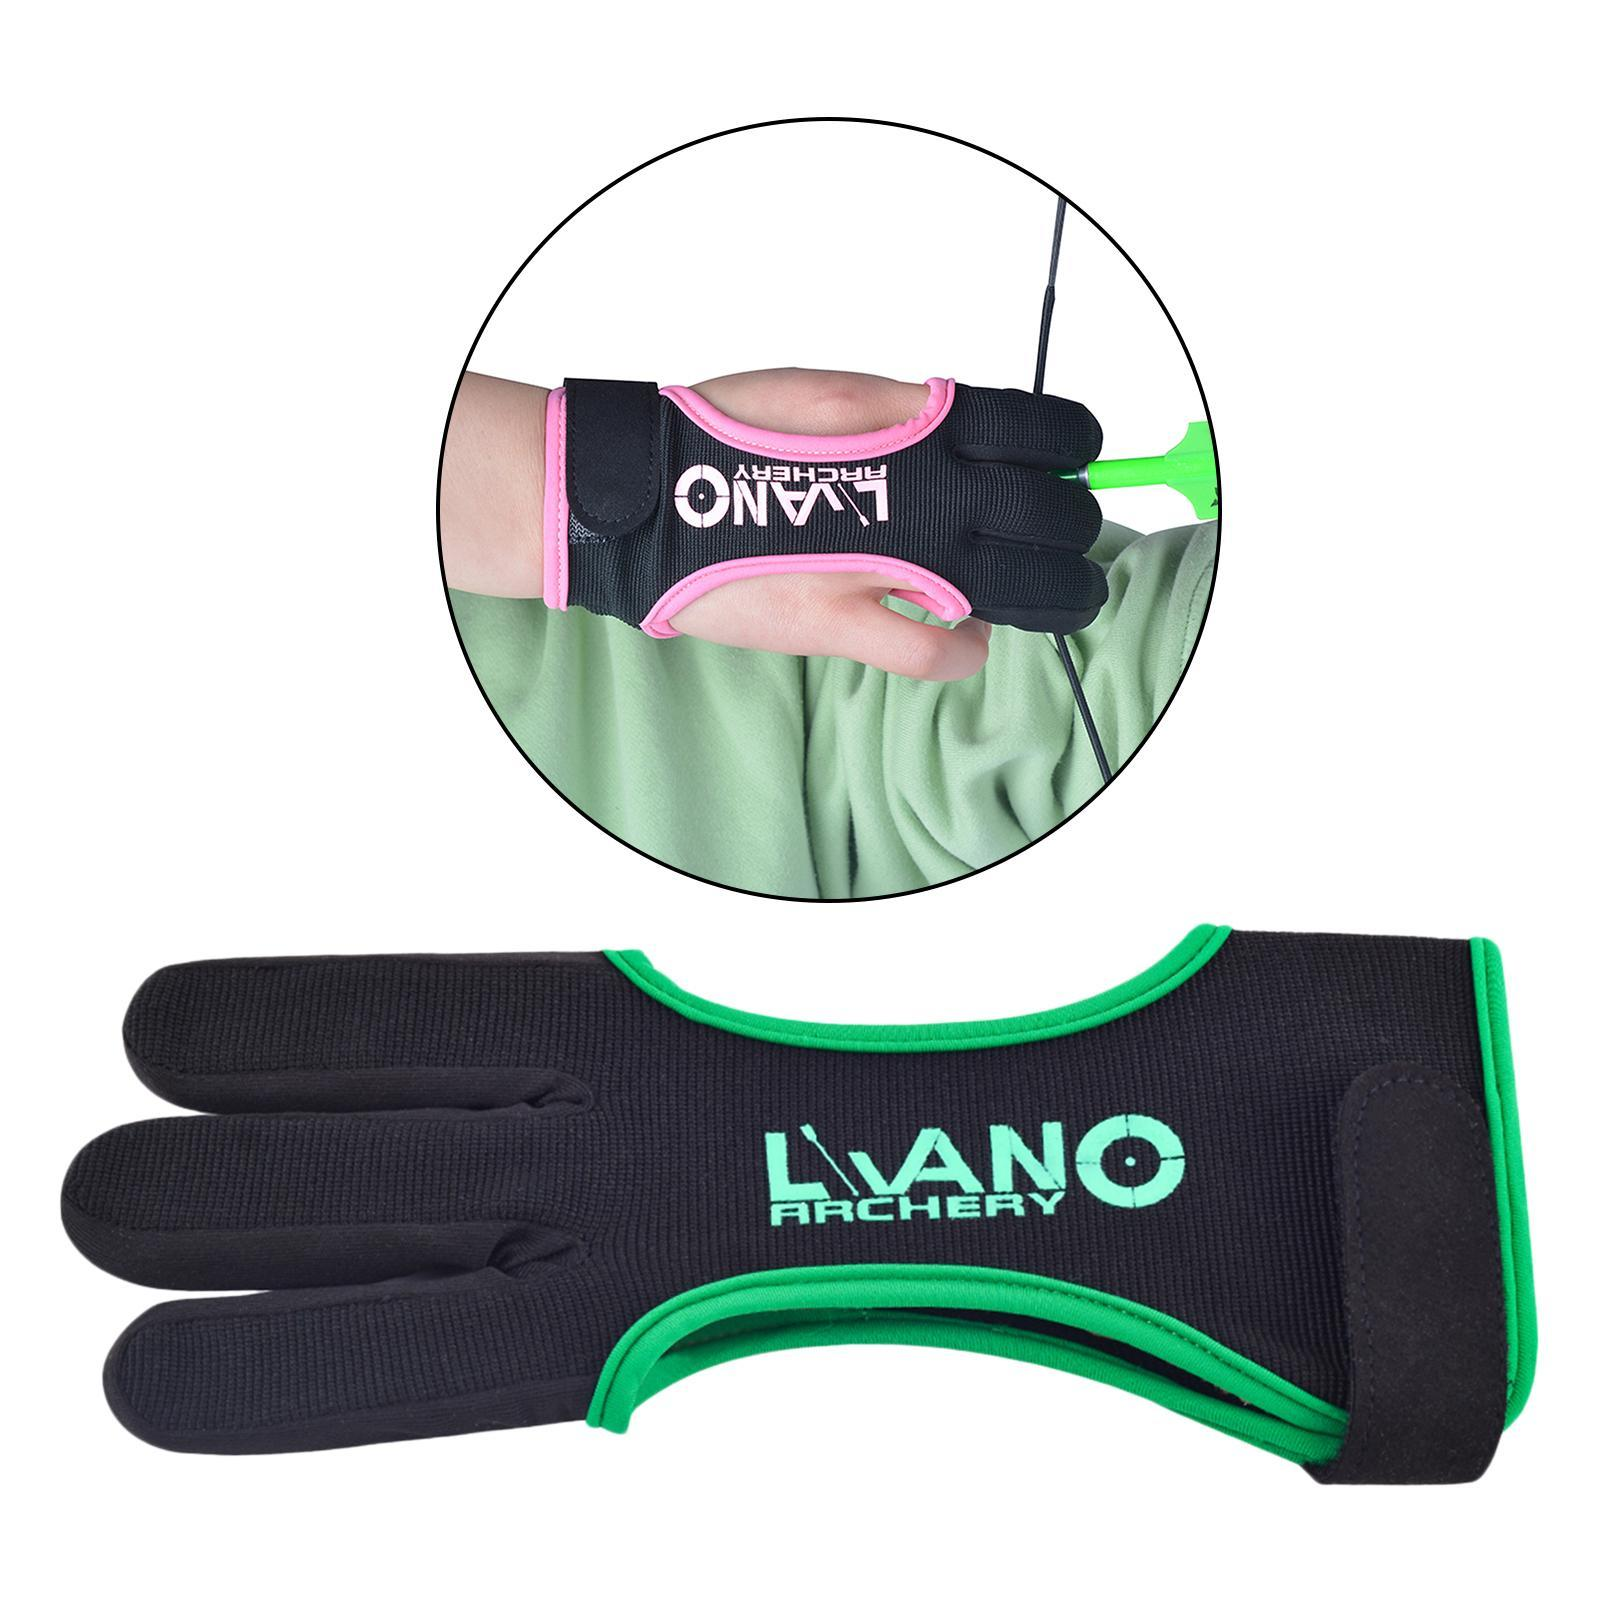 thumbnail 94 - Archery Glove for Recurve & Compound Bow 3 Finger Guard for Women Men Youth